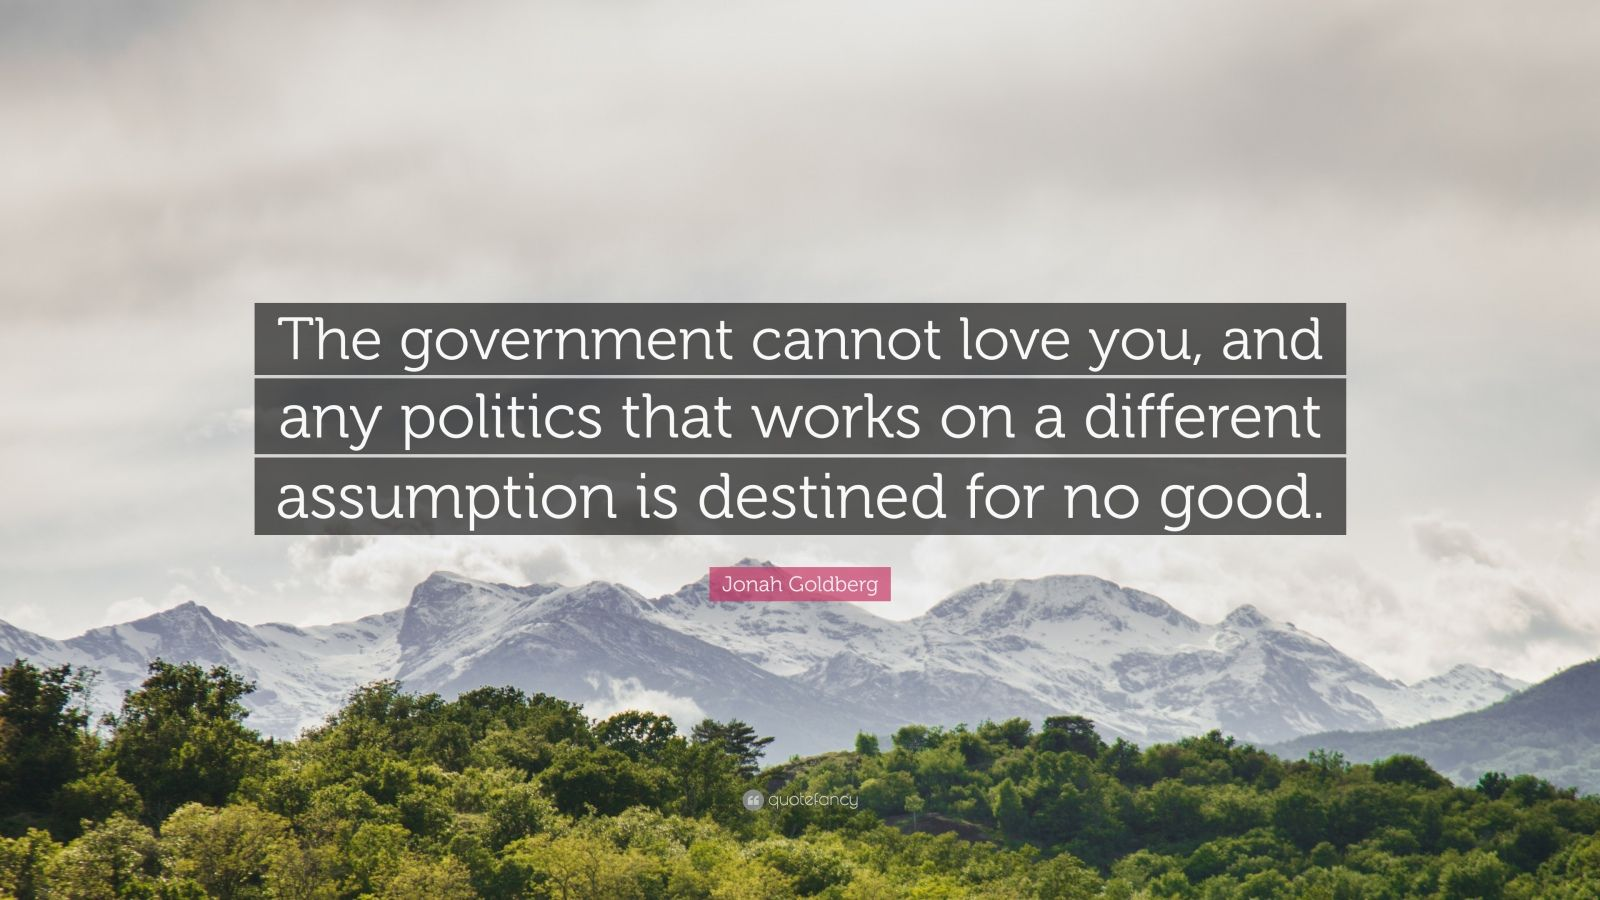 Jonah Goldberg Quote The Government Cannot Love You And Any Politics That Works On A Different Assumpt Lgbtq Quotes Life Quotes To Live By Life Goals Quotes